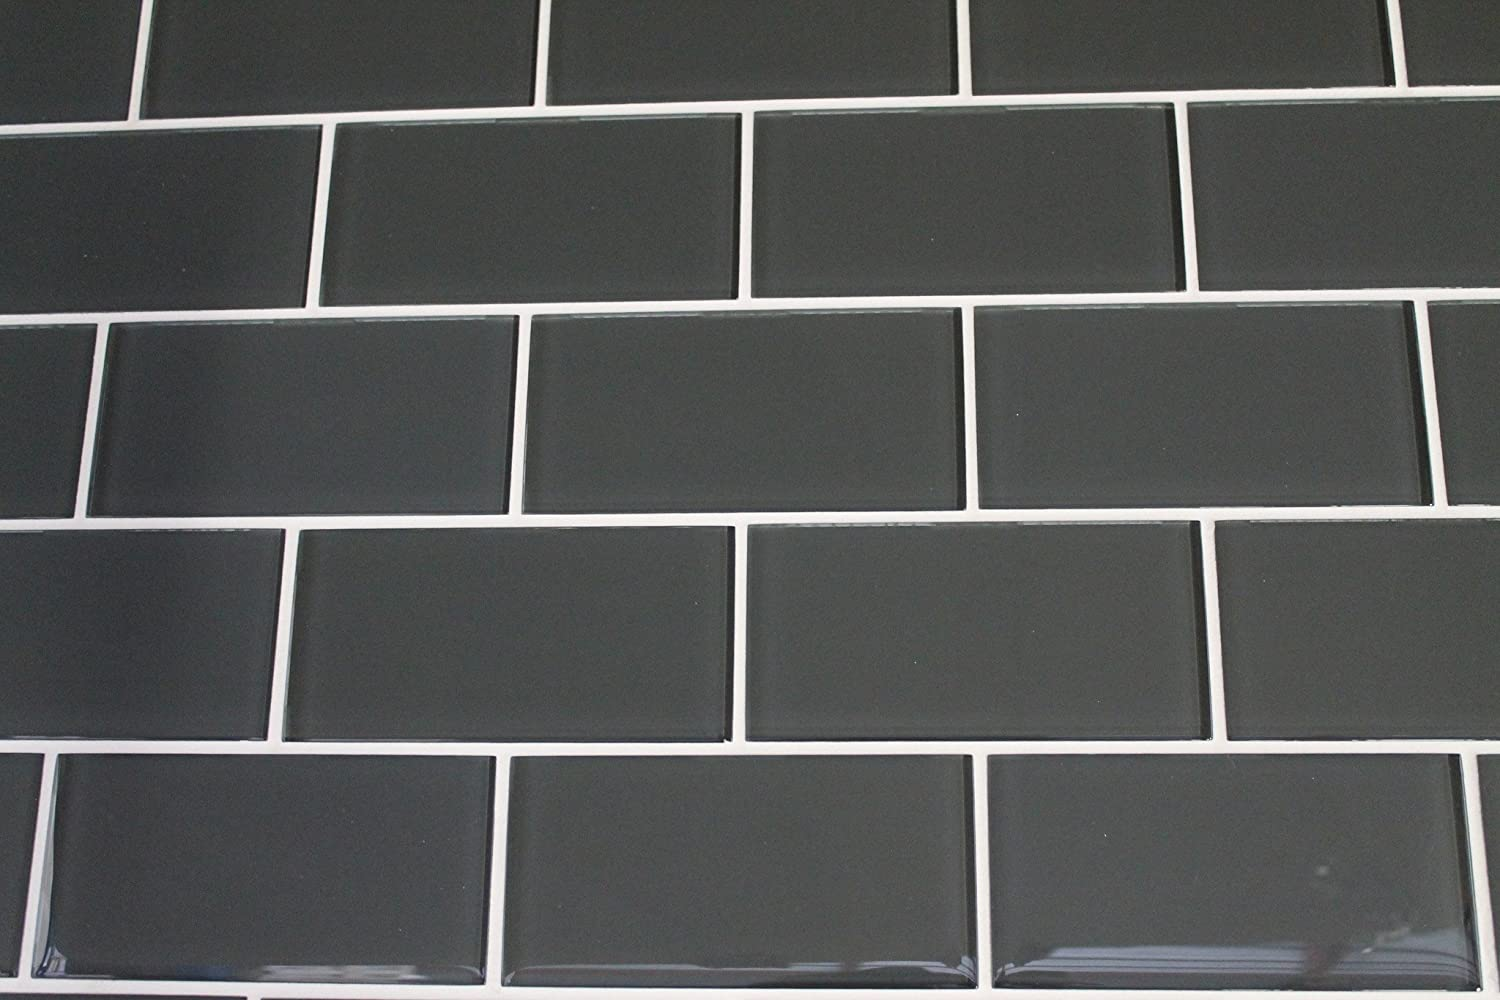 3 x 6 sample piece ash dark grey 3x6 glass subway tiles 3 x 6 sample piece ash dark grey 3x6 glass subway tiles amazon dailygadgetfo Image collections